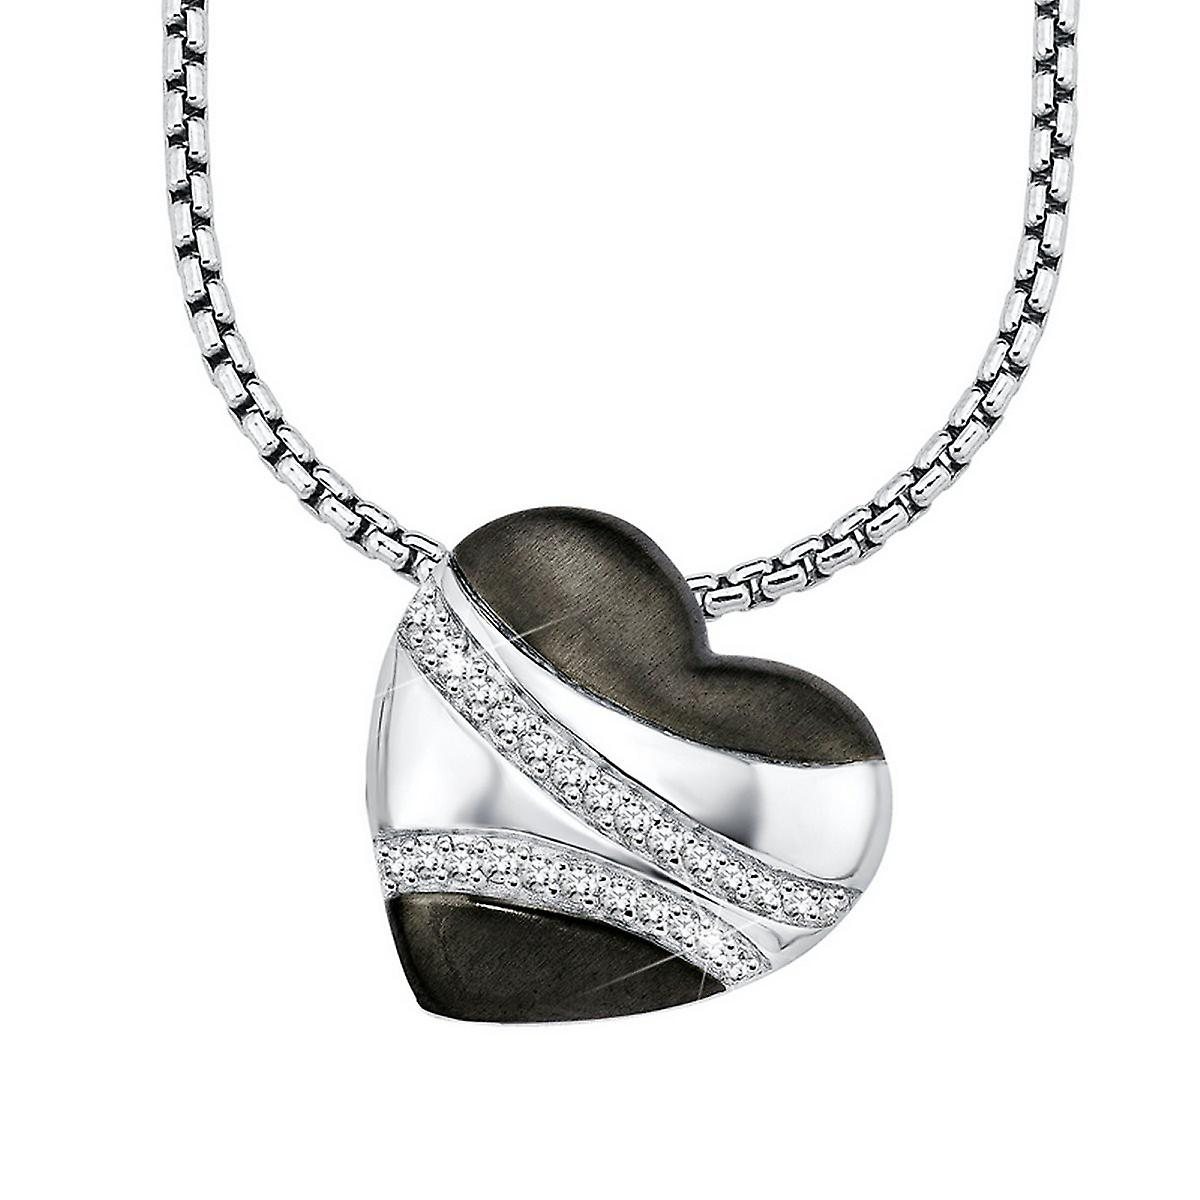 s.Oliver Jewel Damen Kette Collier Silber Zyrkonia SO829/1 - 418607